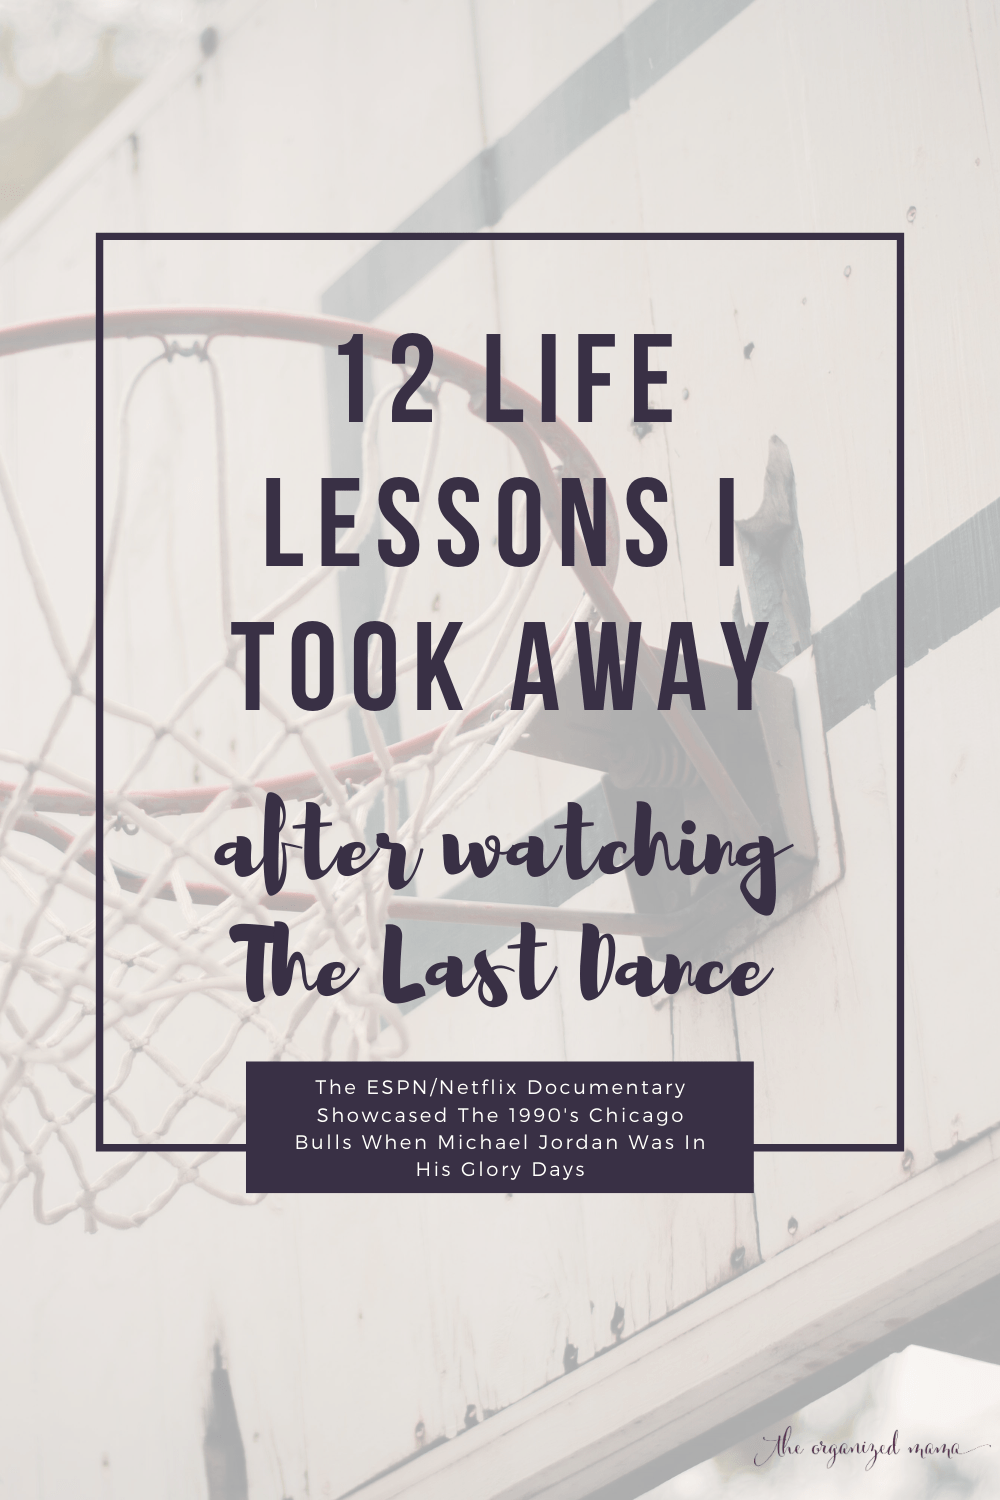 12 Life Lessons I Took Away After Watching The Last Dance